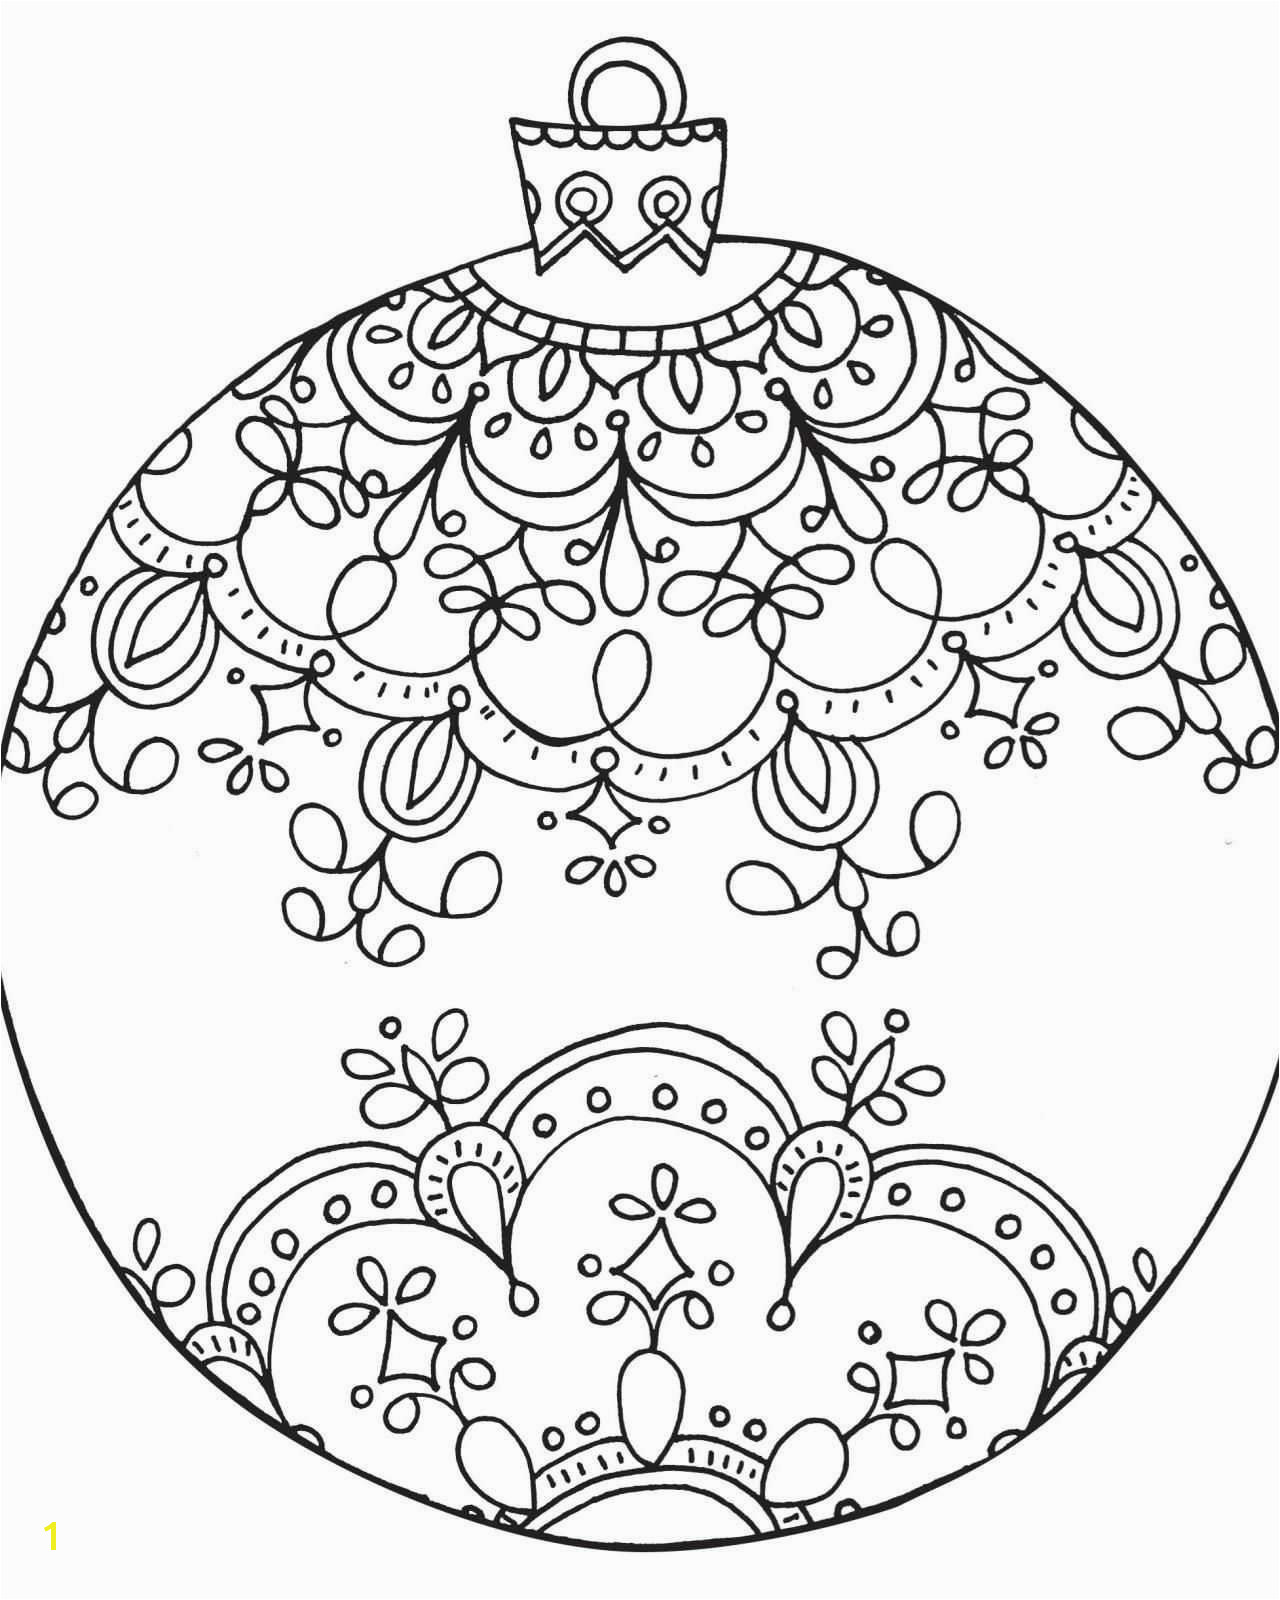 Free Printable Christmas Coloring Pages for Adults Fresh Cool Coloring Pages Printable New Printable Cds 0d